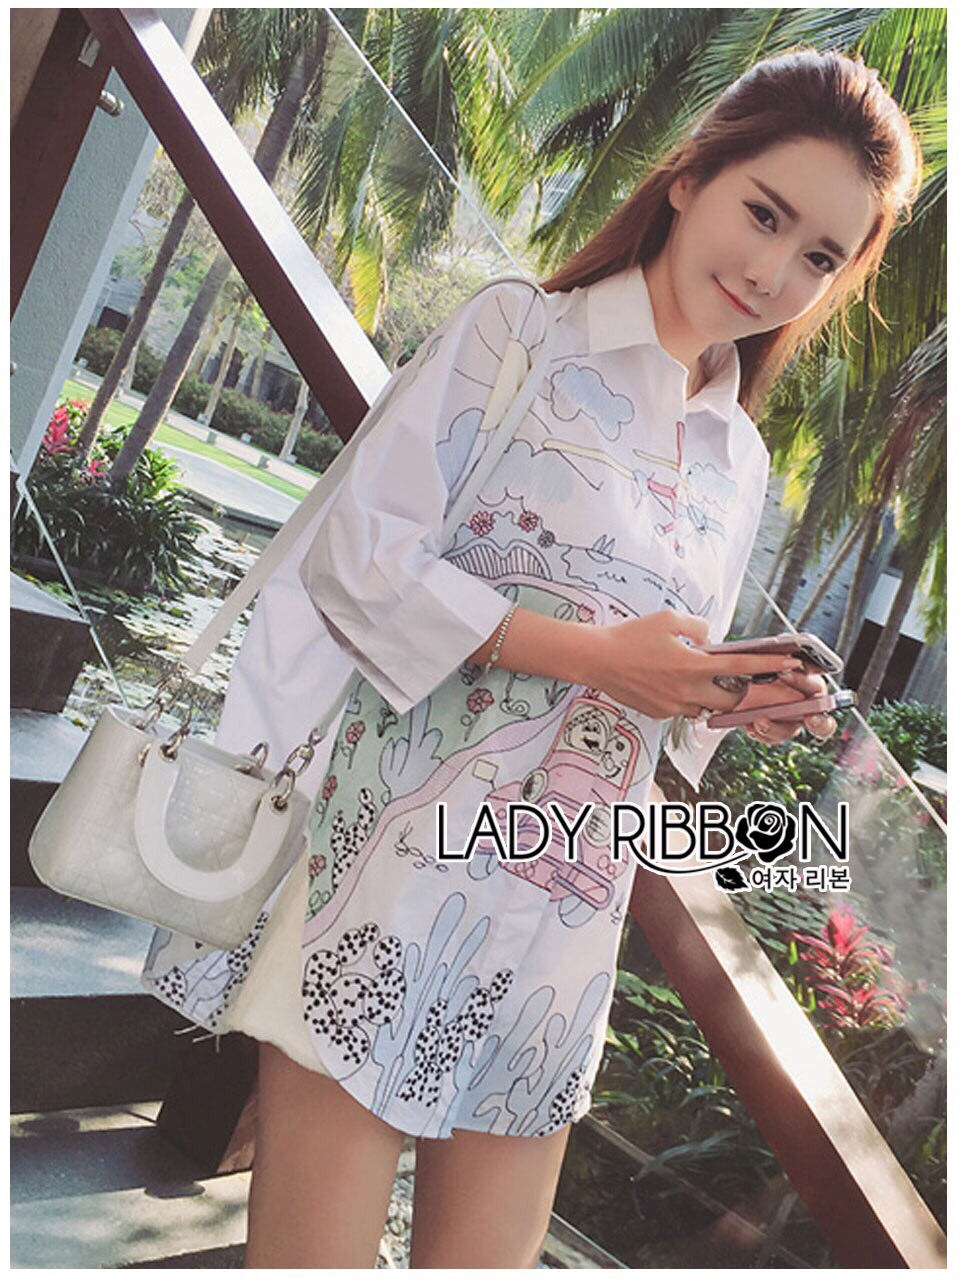 Lady Ribbon Korea Dress เชิ้ต LR09130616 &#x1F380 Lady Ribbon's Made &#x1F380 Lady Nicole Artful Dreamy Embroidered Cotton Shirt in White Dress เชิ้ตผ้าคอตตอน